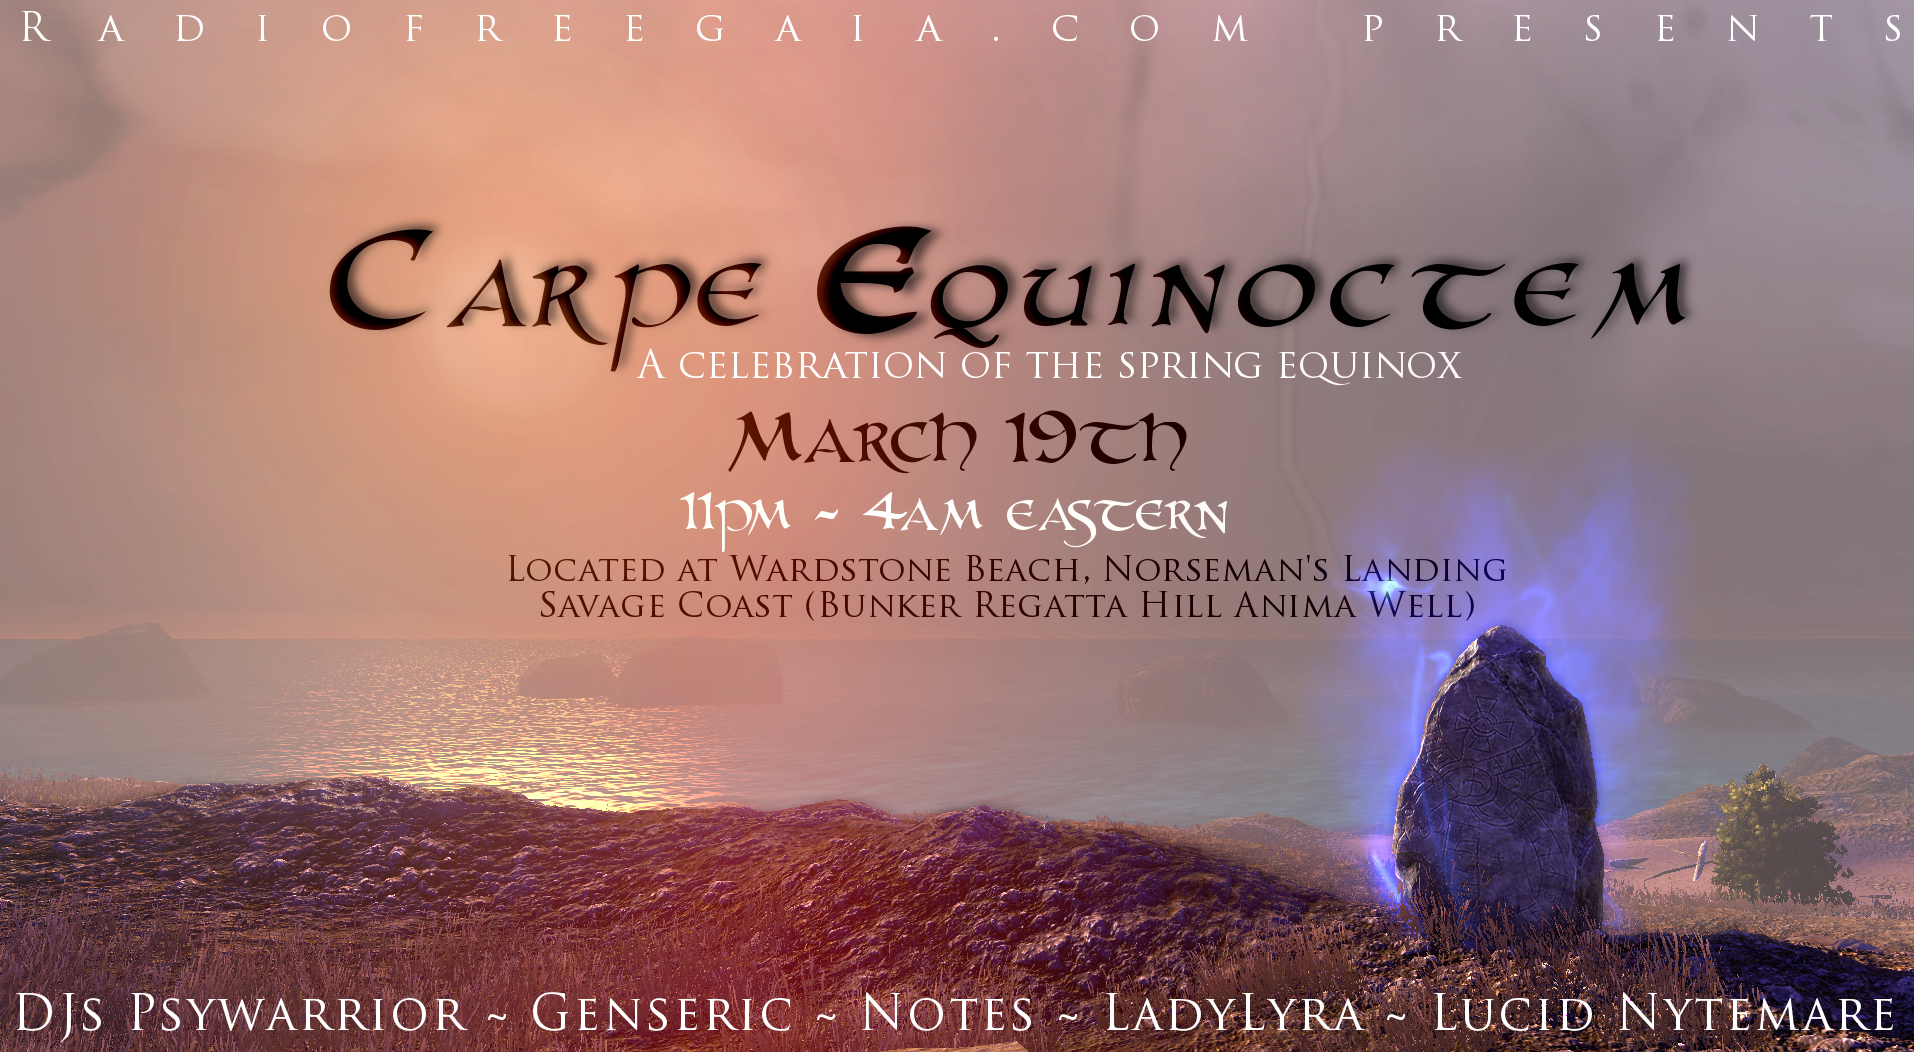 a history celebration of spring equinox Ostara - spring equinox - march 21st/22nd it is traditionally the day of equilibrium, neither harsh winter or the merciless summer, and is a time of childish wonder.